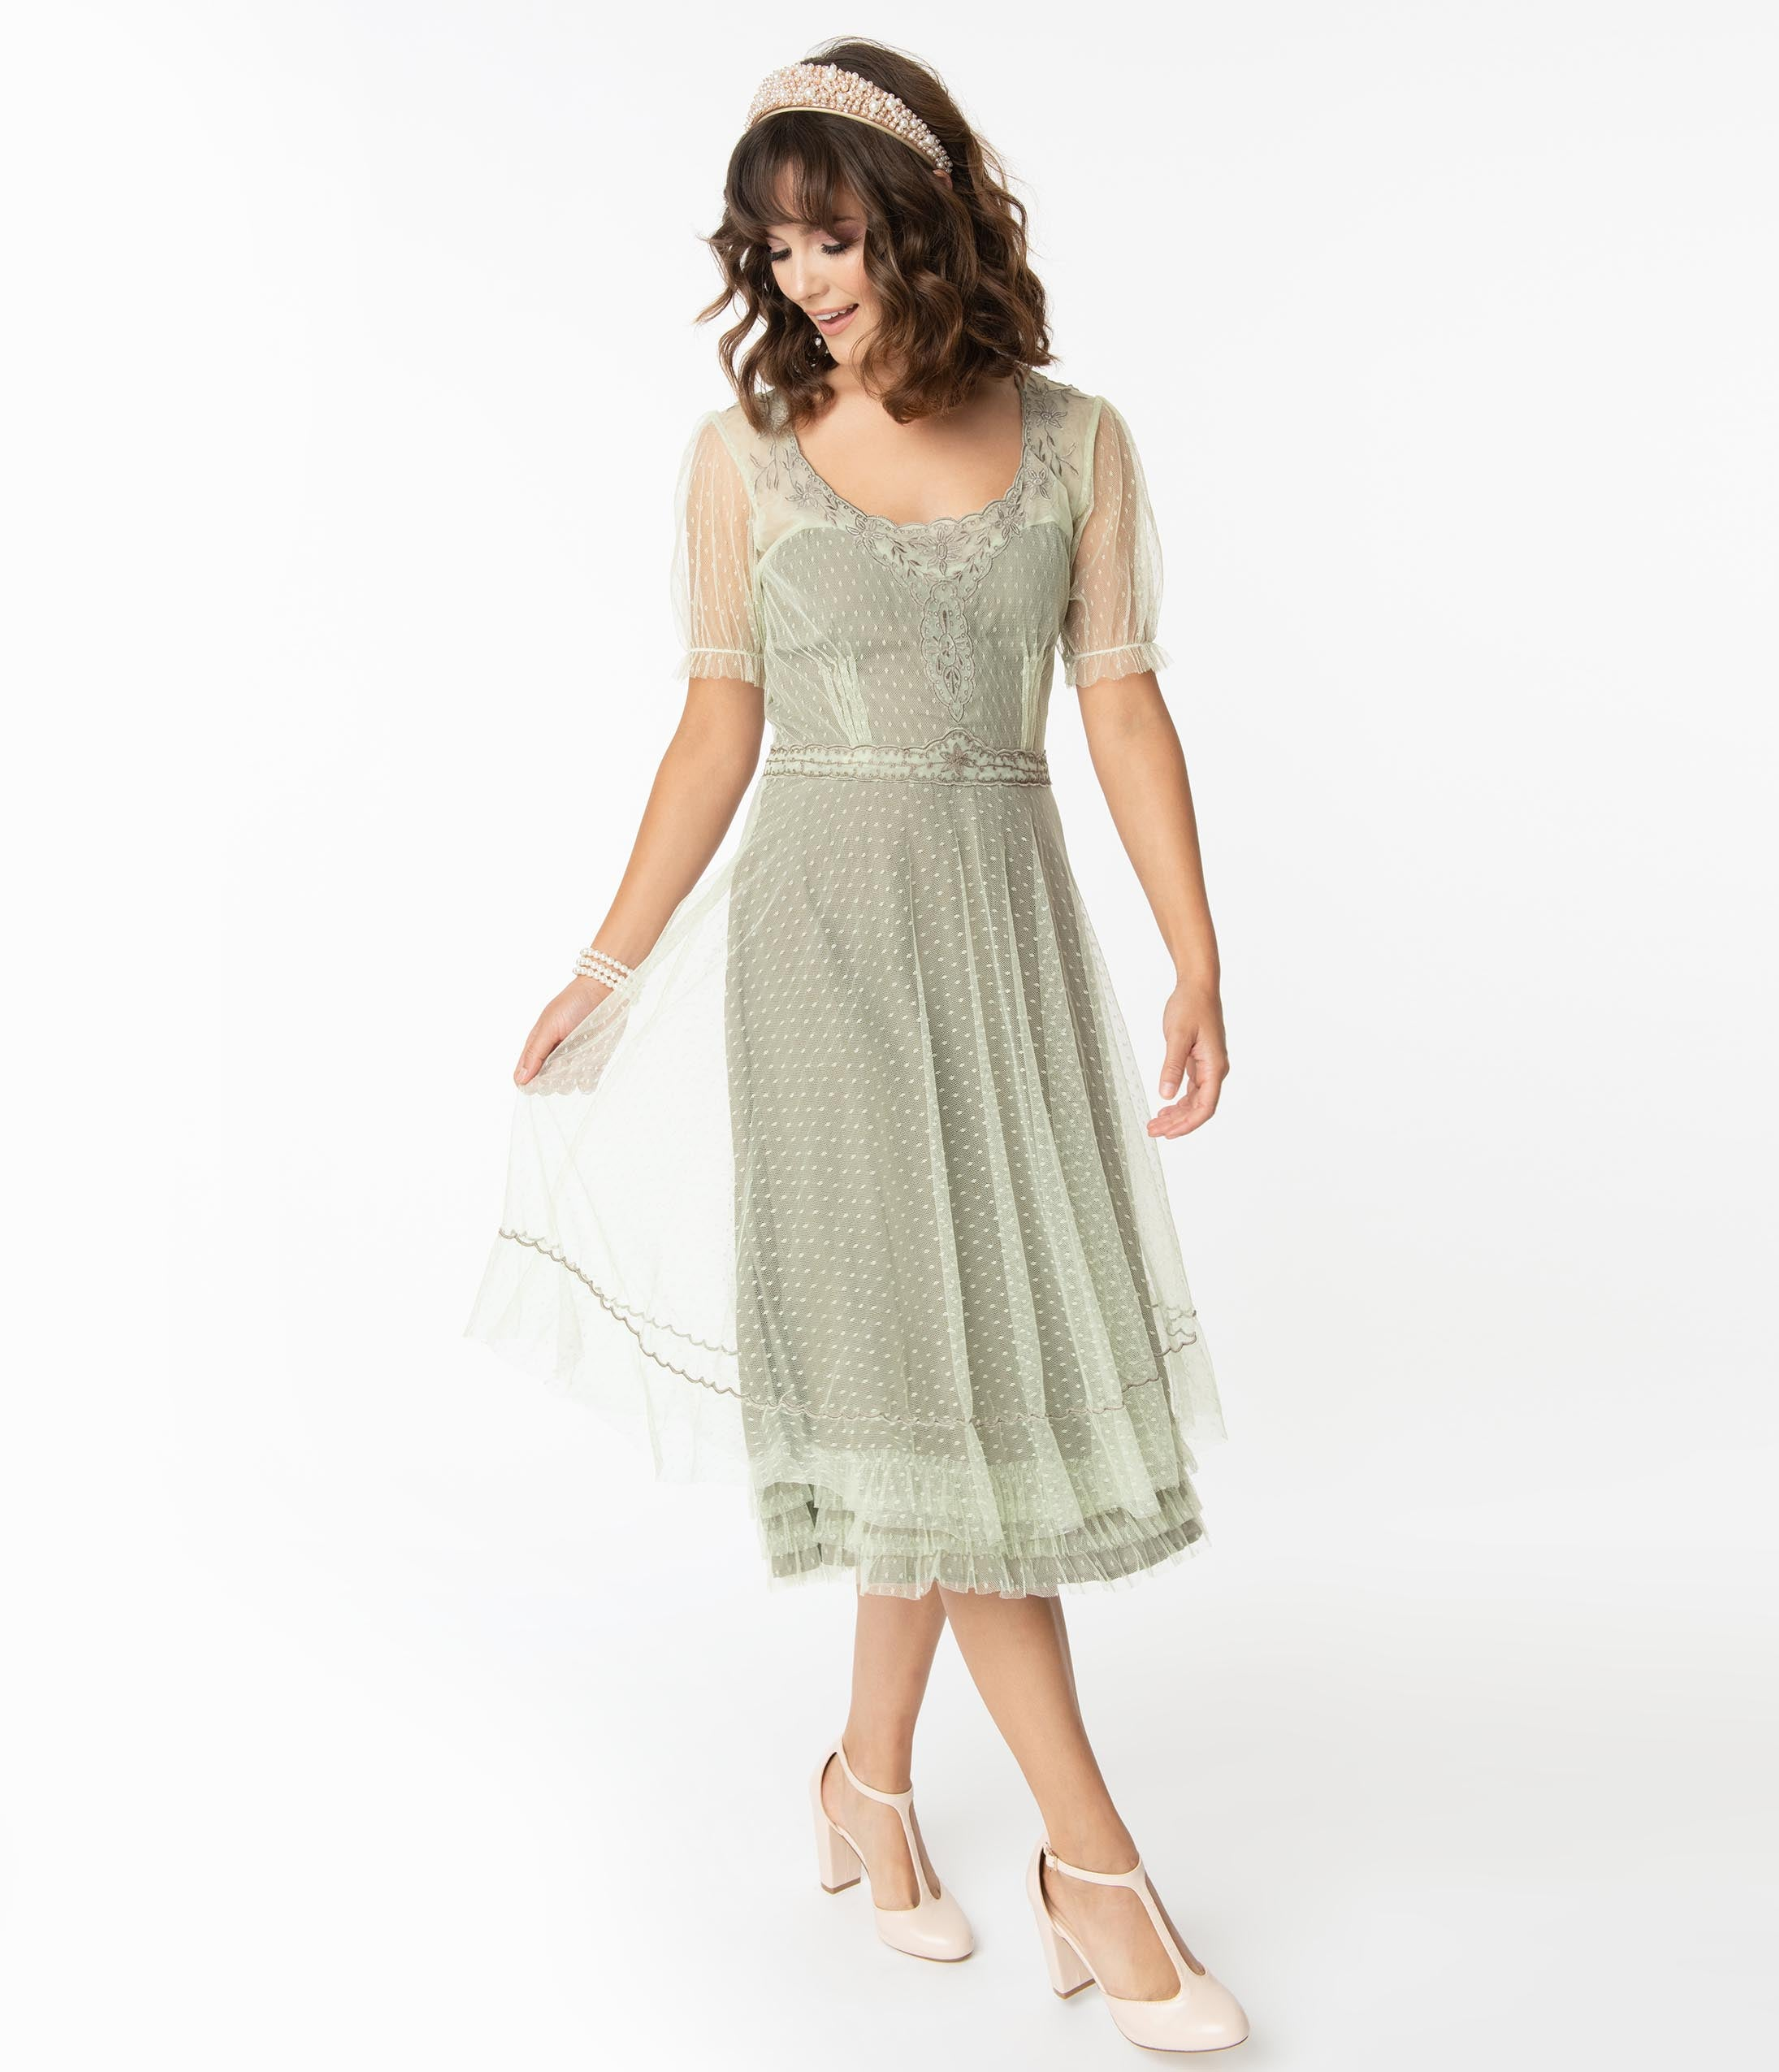 Cottagecore Dresses Aesthetic, Granny, Vintage Vintage Style Mint Swiss Dot Edwardian Flapper Dress $246.00 AT vintagedancer.com